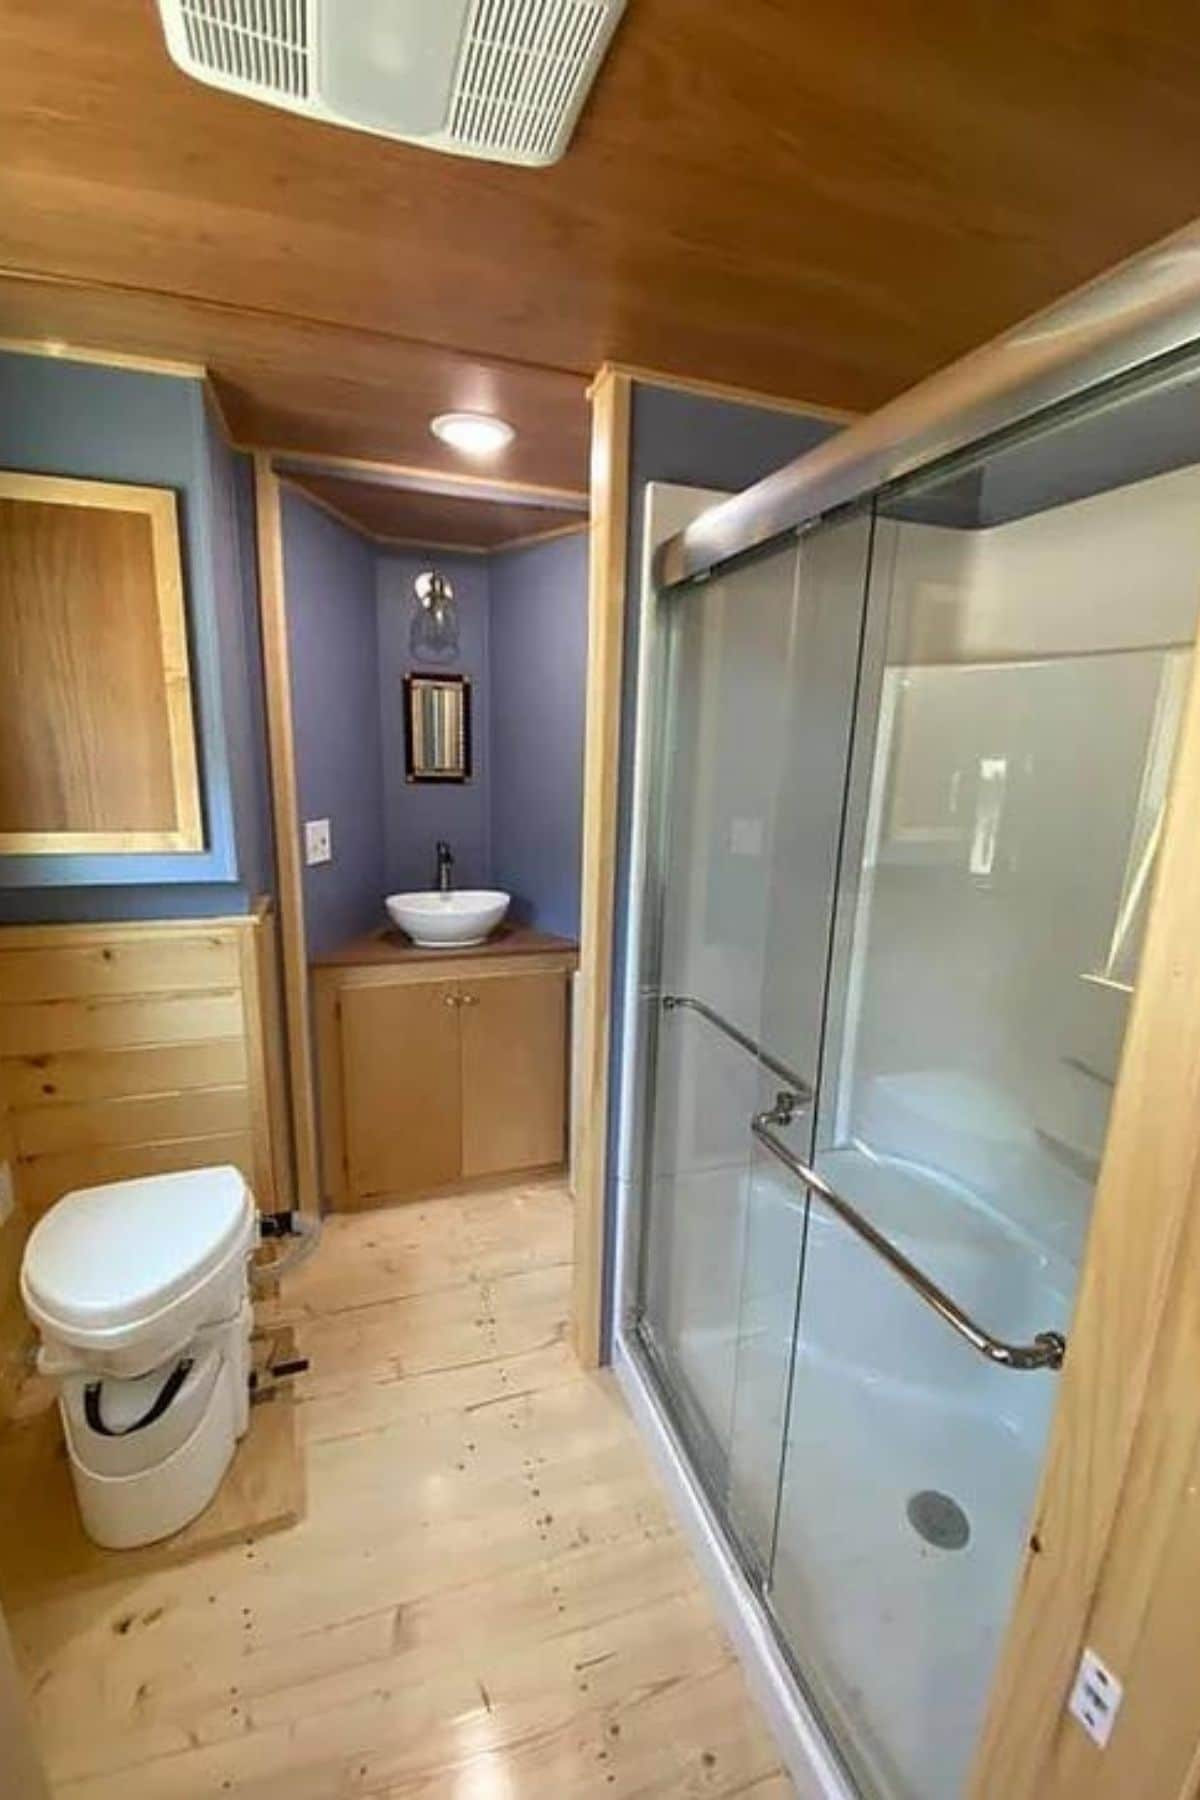 Wood bathroom with blue walls and glass shower on right with compost toilet on left